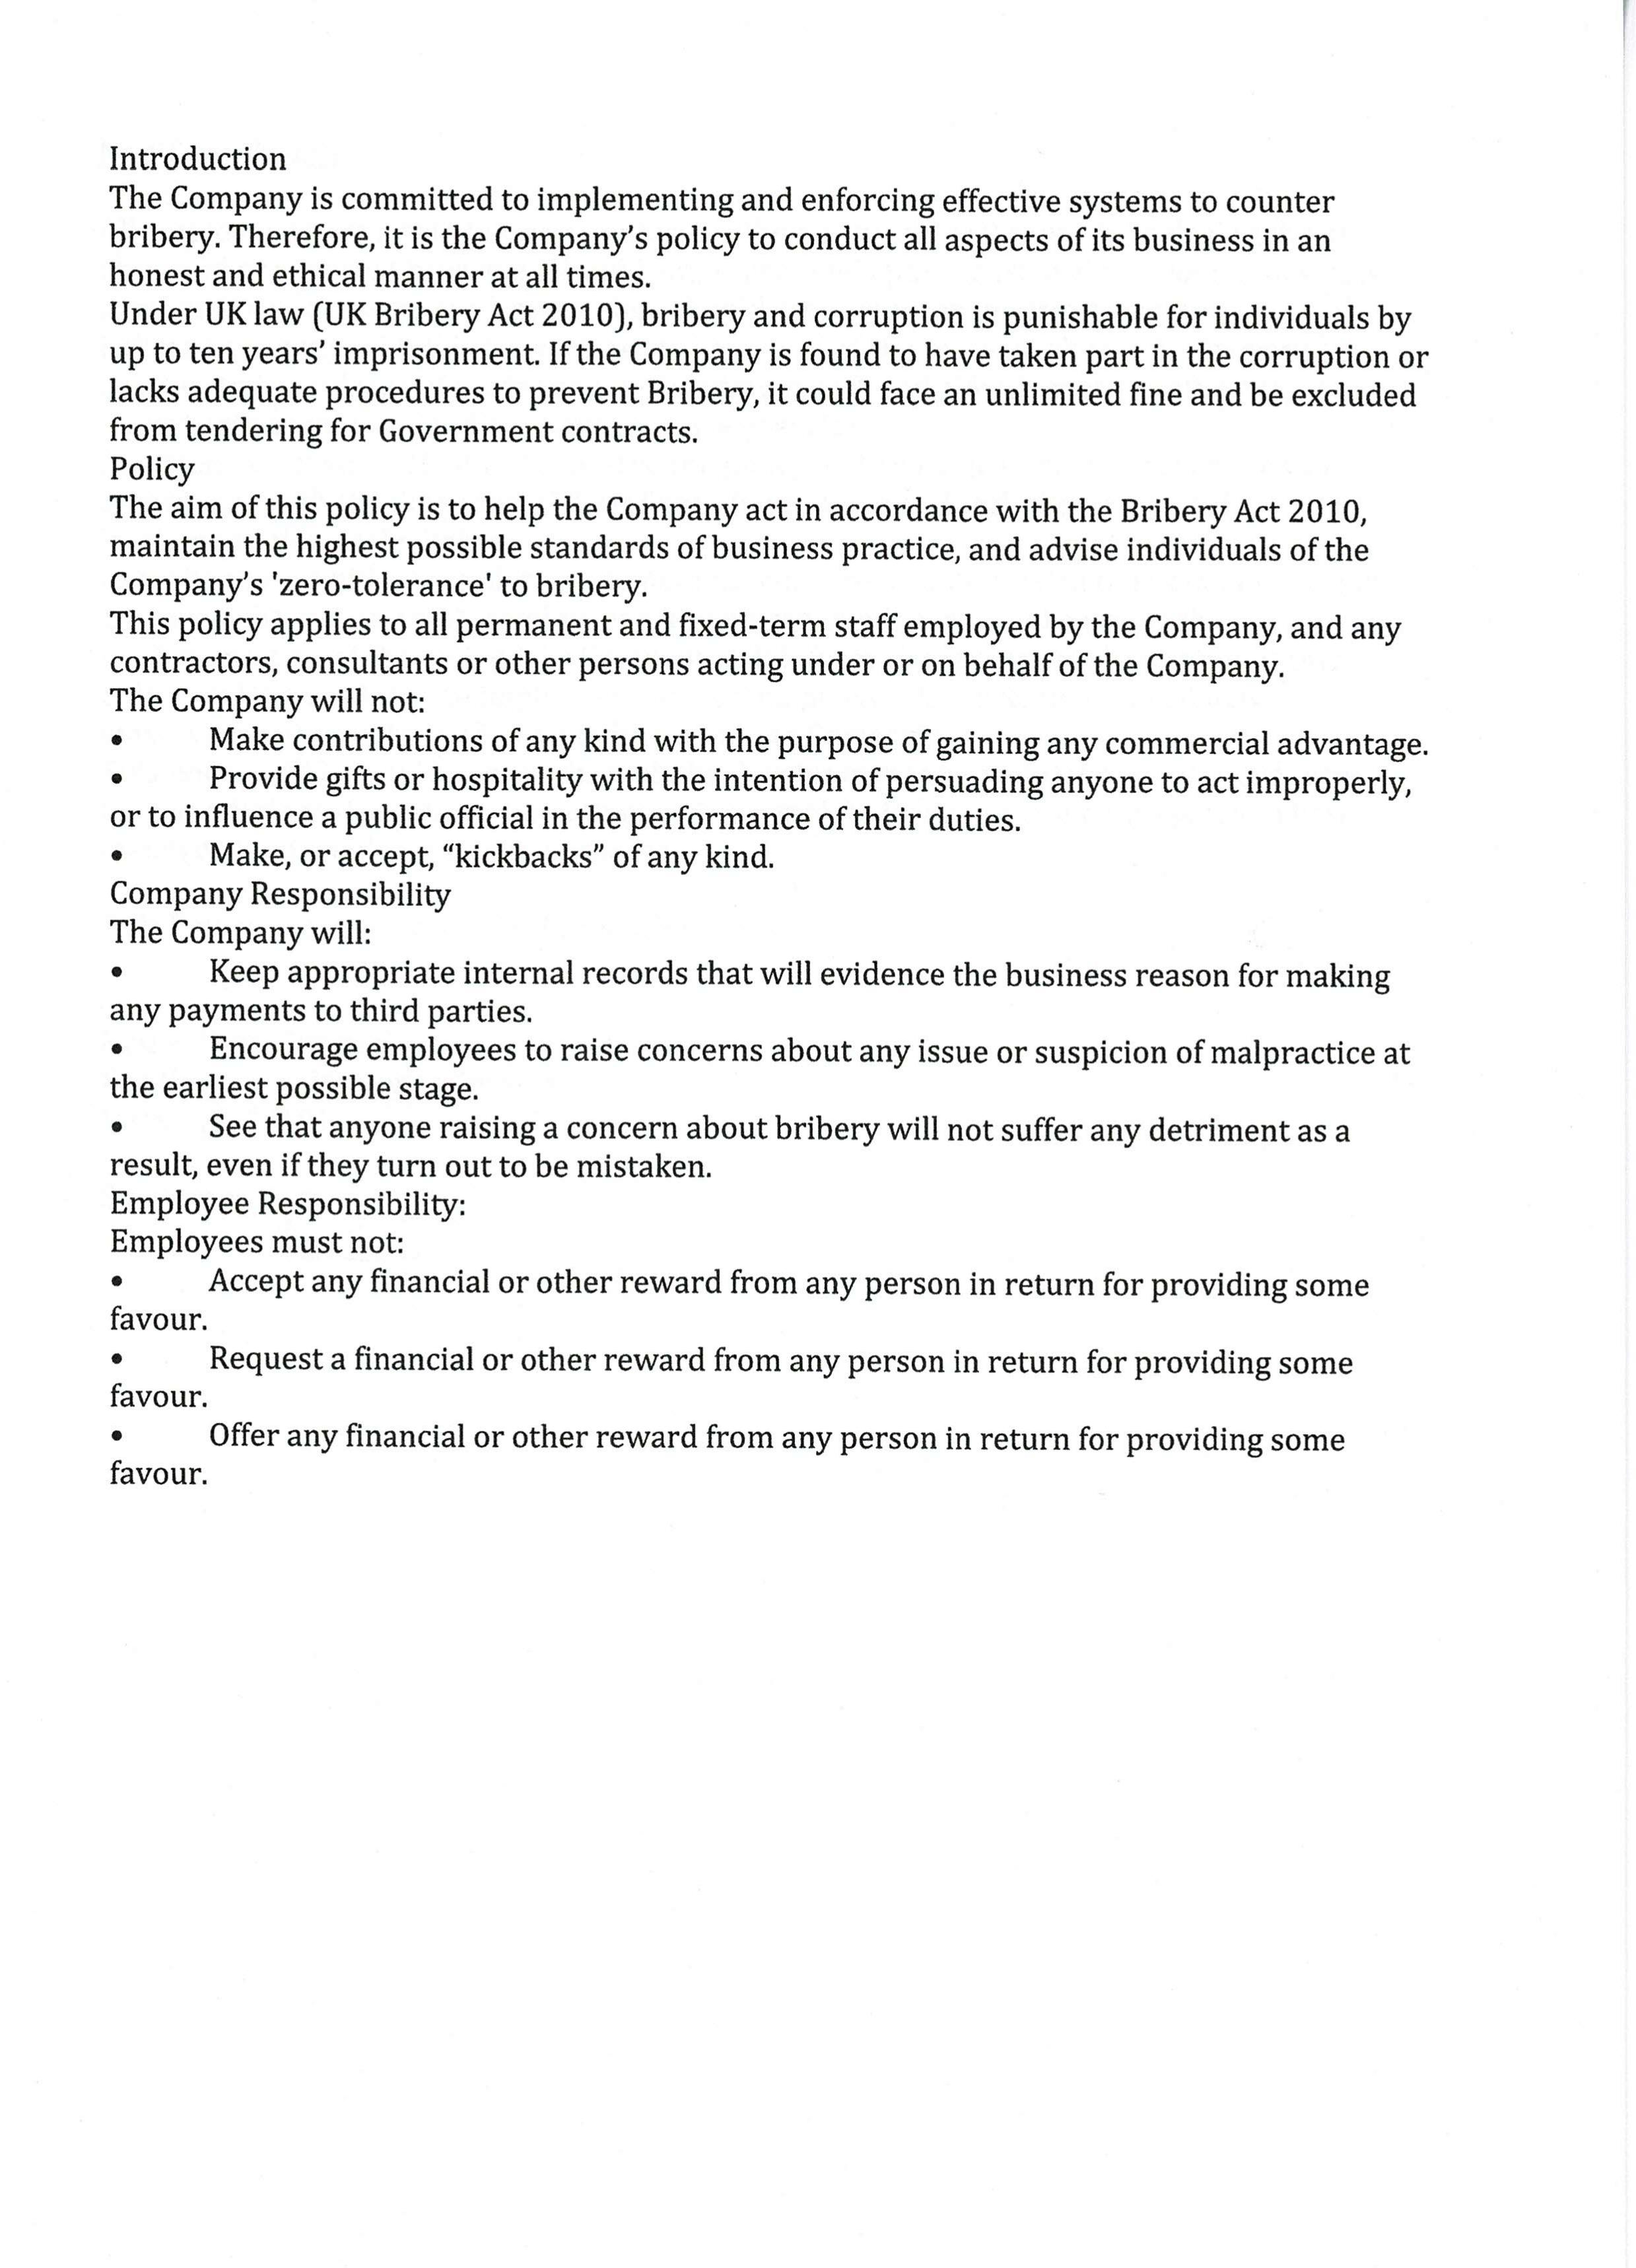 Anti-Bribery Policy page 3